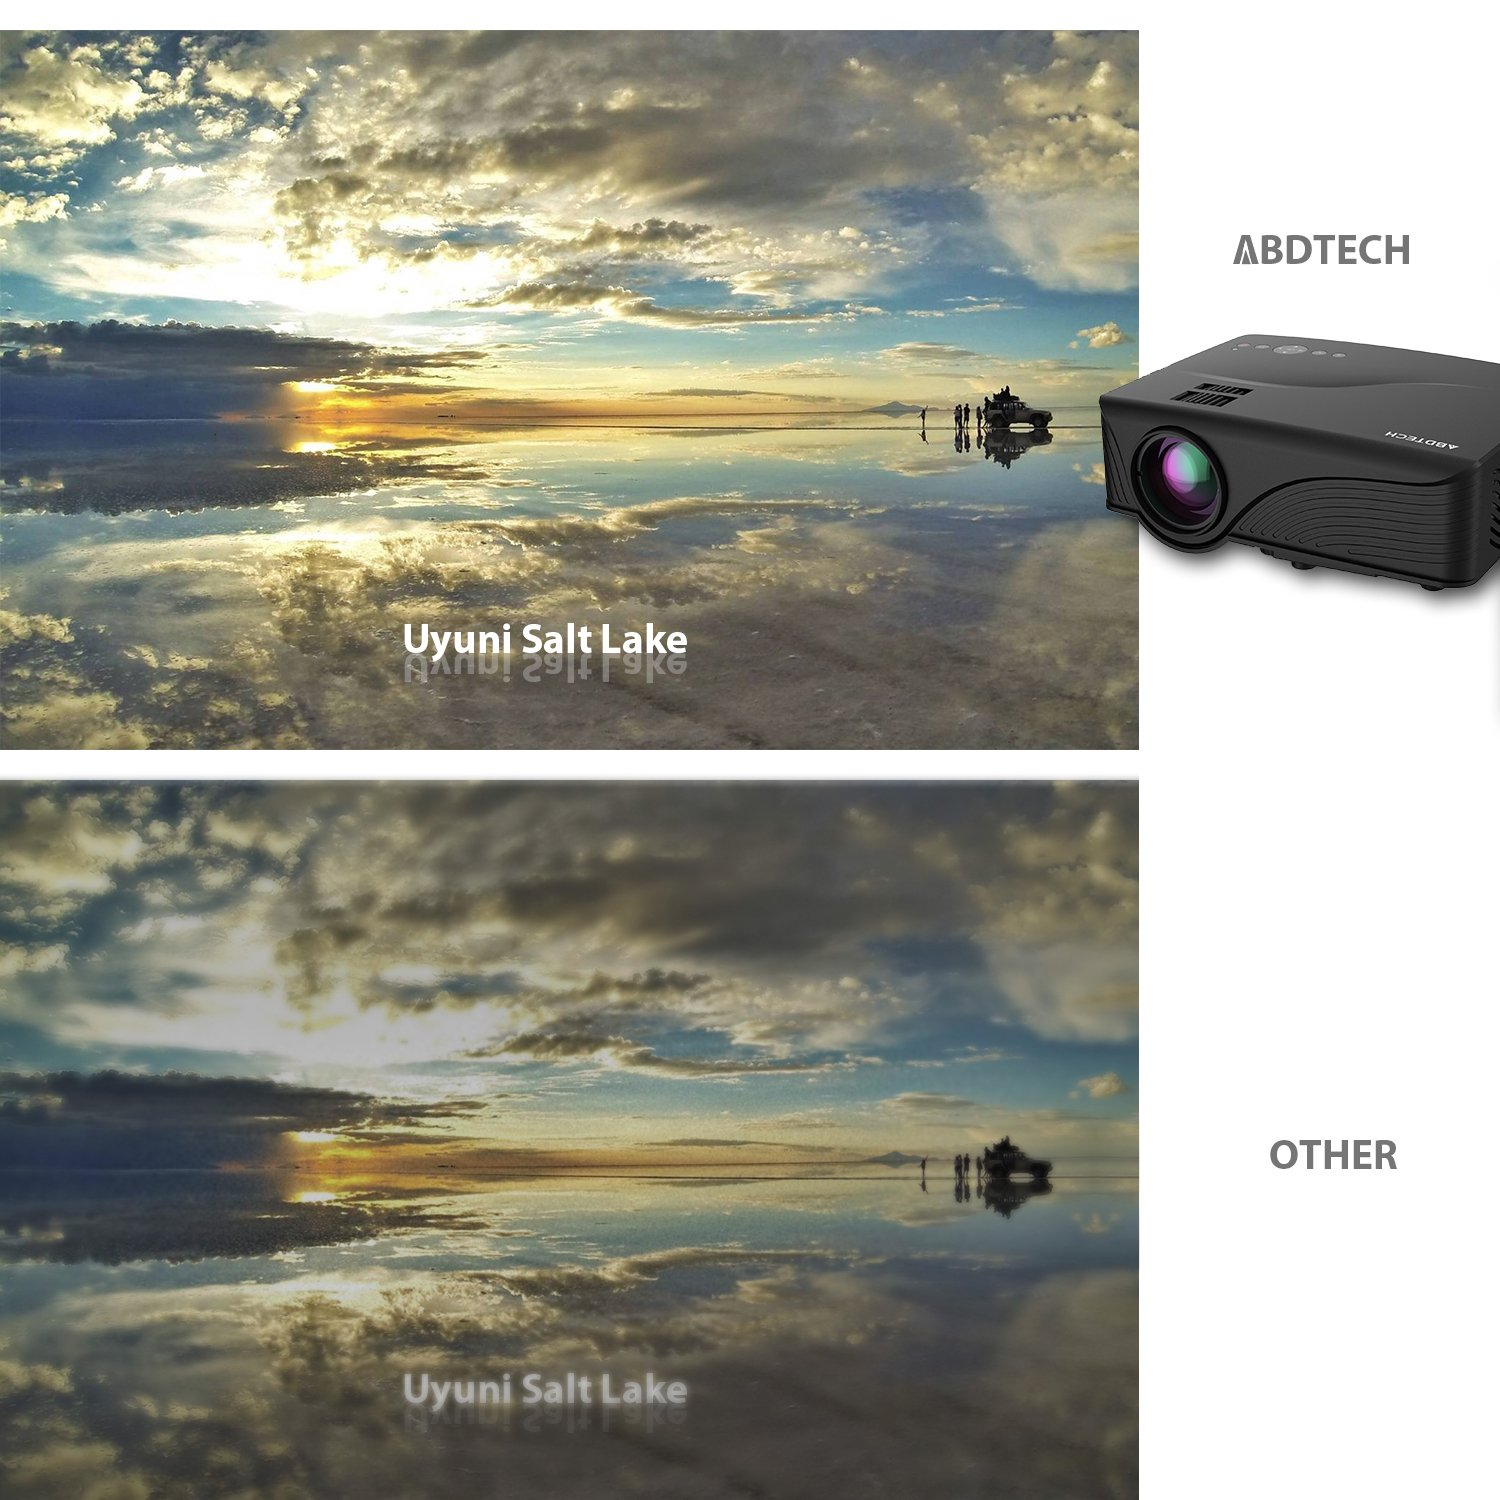 """Abdtech 1200 Lumens Mini LED Multimedia Home Theater Projector - Max 120"""" Screen Optical Keystone USB/AV/SD/HDMI/VGA Interface – Ideal for Video Games, Movie Night, Family Videos and Pictures"""